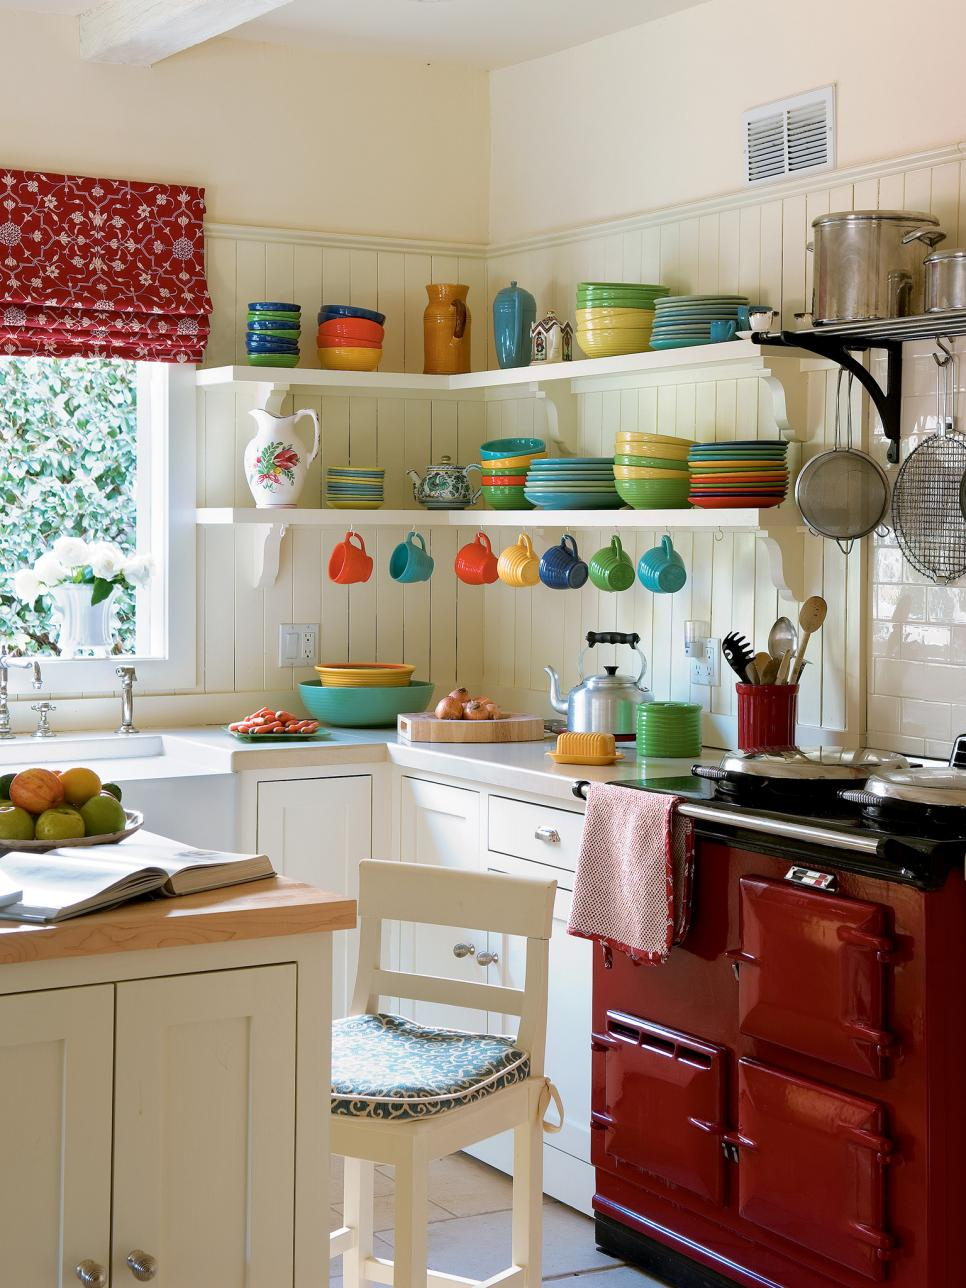 Chic Small Kitchen Ideas Witch Colorful Dishware And Simple Shelves